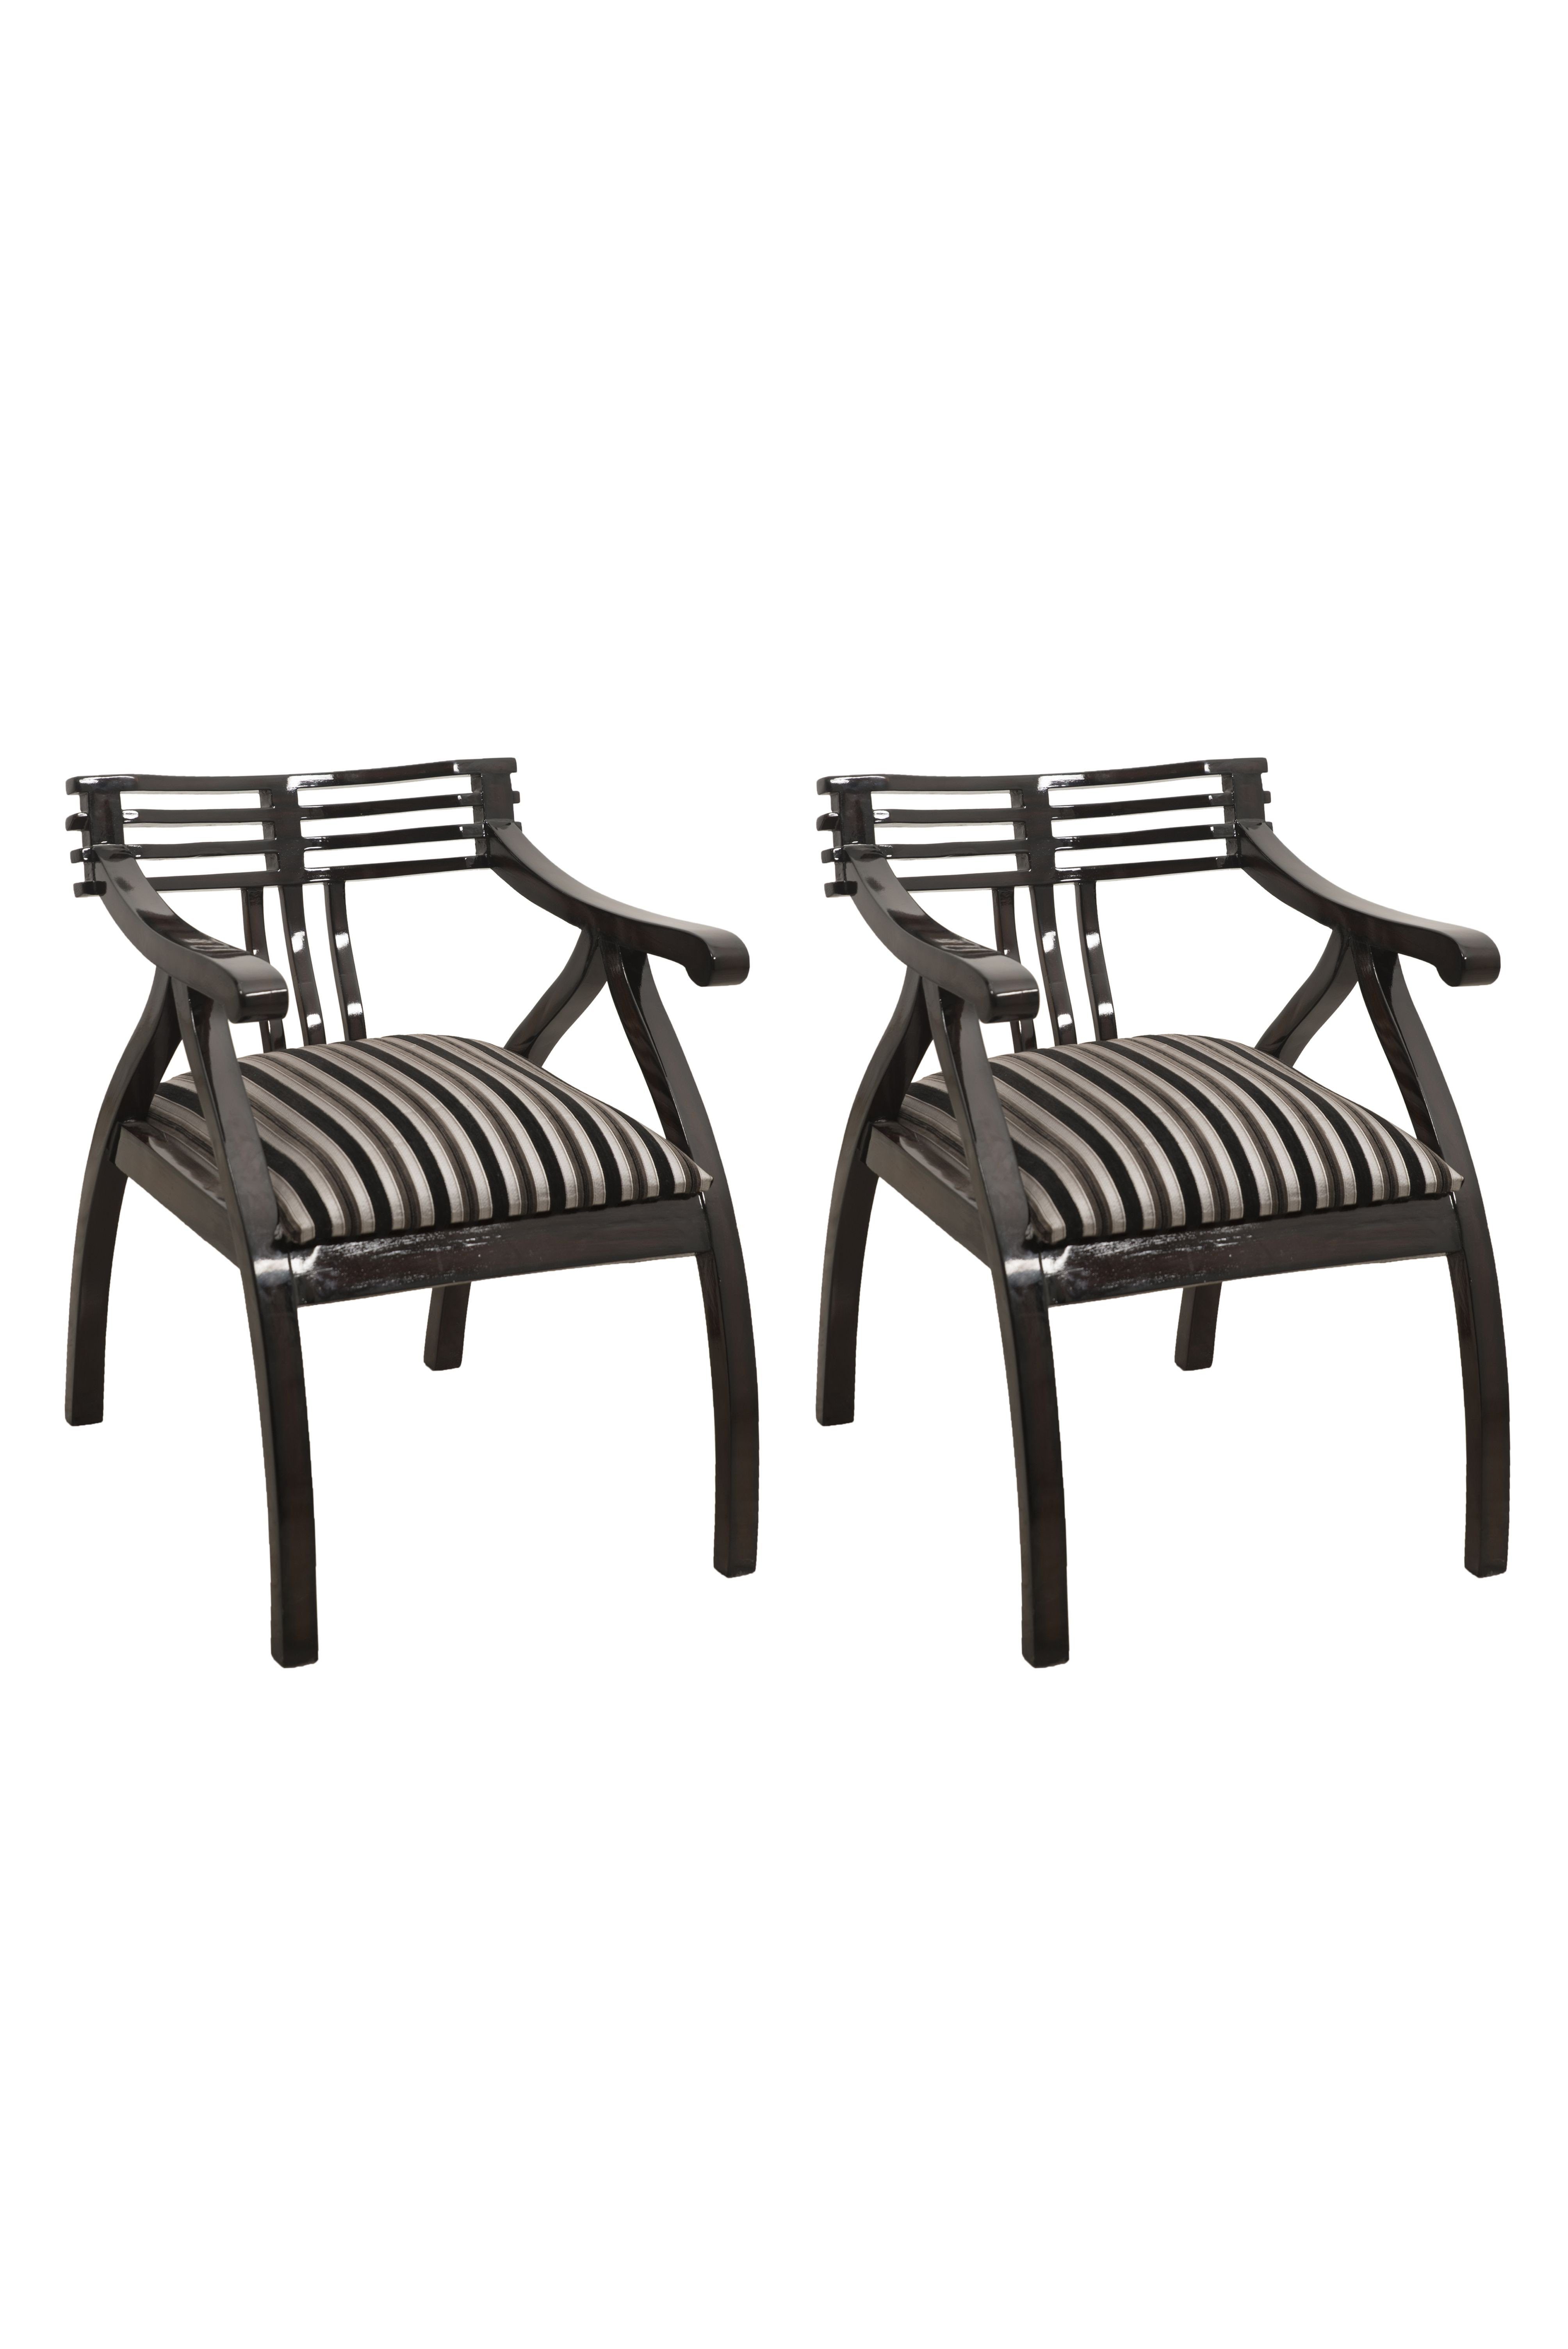 Bedroom Chairs for Sale New Dzyn Furniture Bedroom Chair Set Of 2 Buy Dzyn